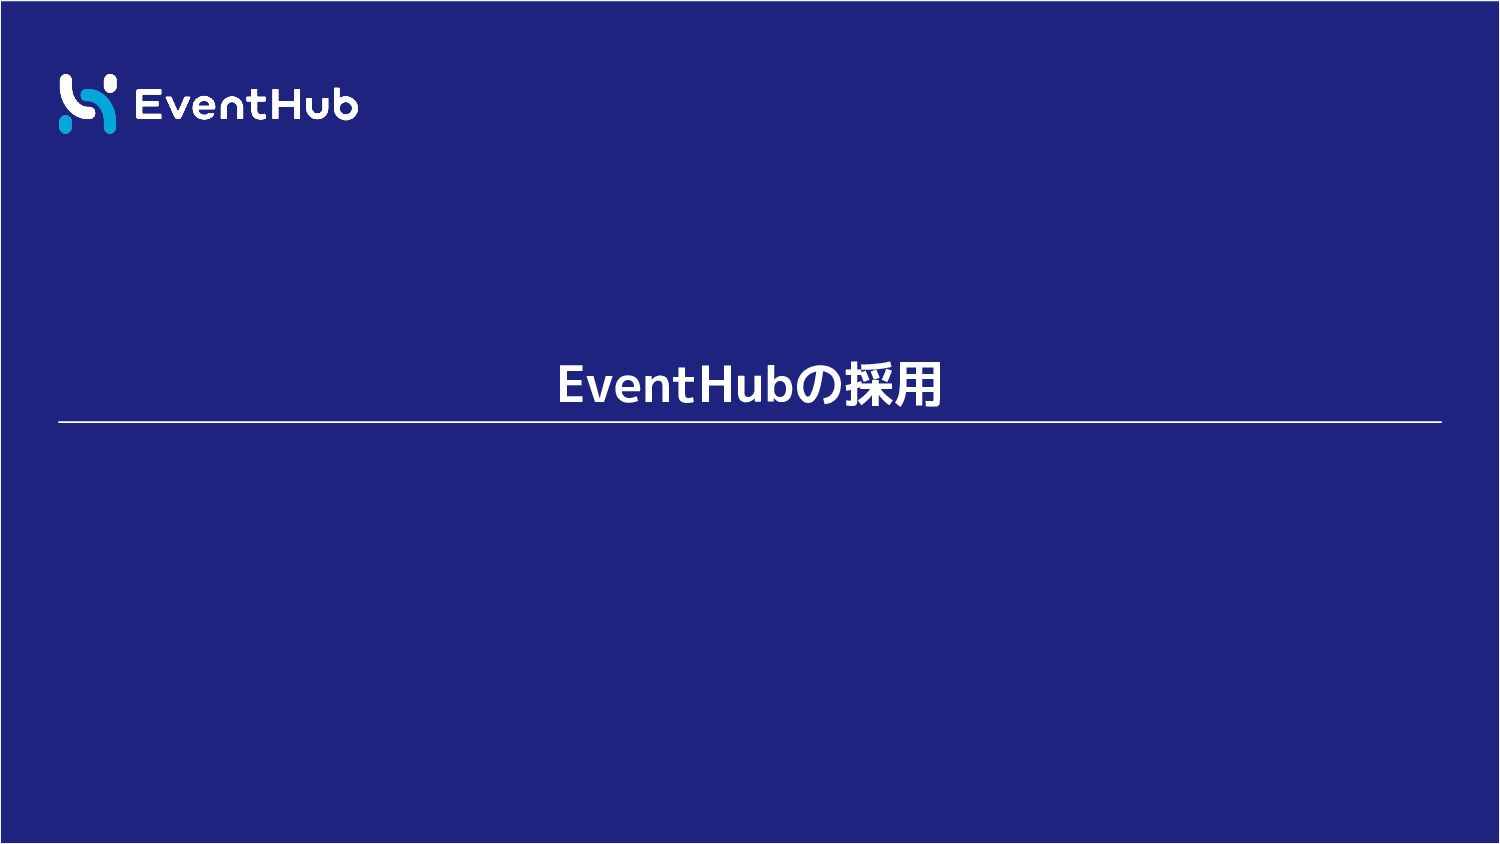 Why EventHub?